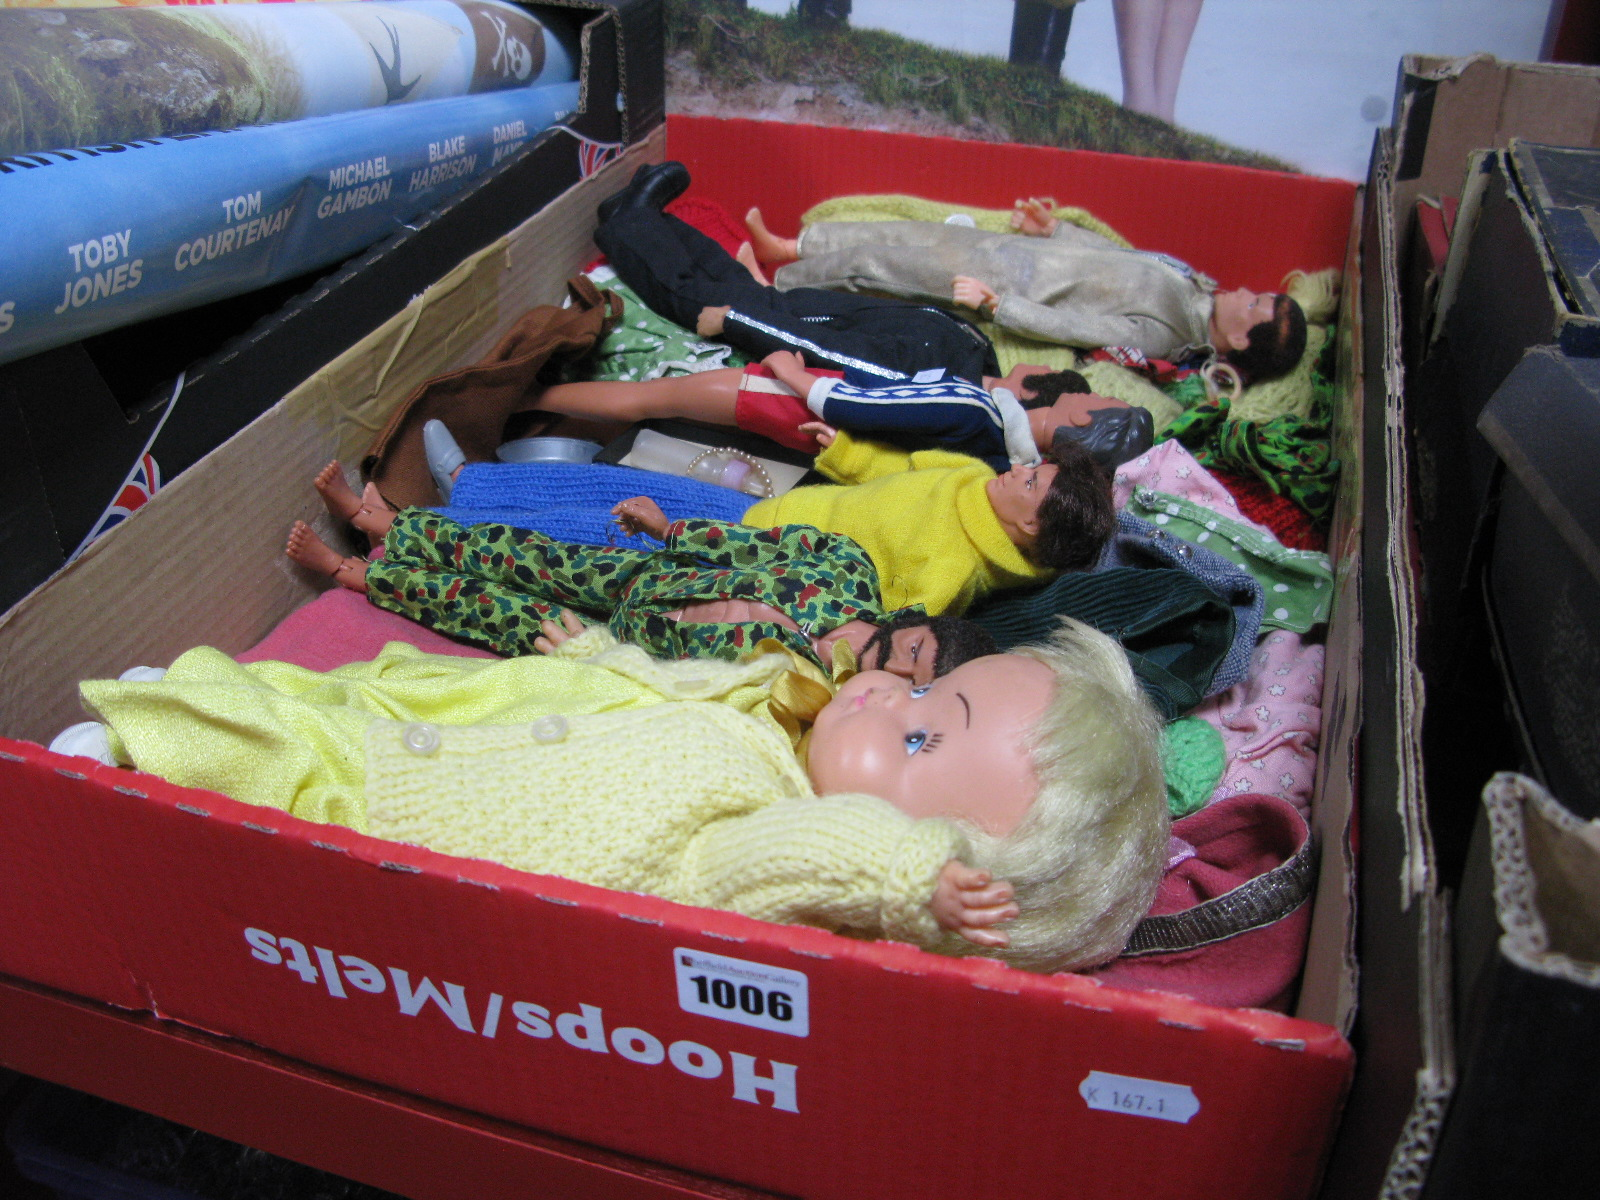 "Lot 1006 - A Quantity of 12"" Action Figures and A Doll, plus associated clothing, all playworn."